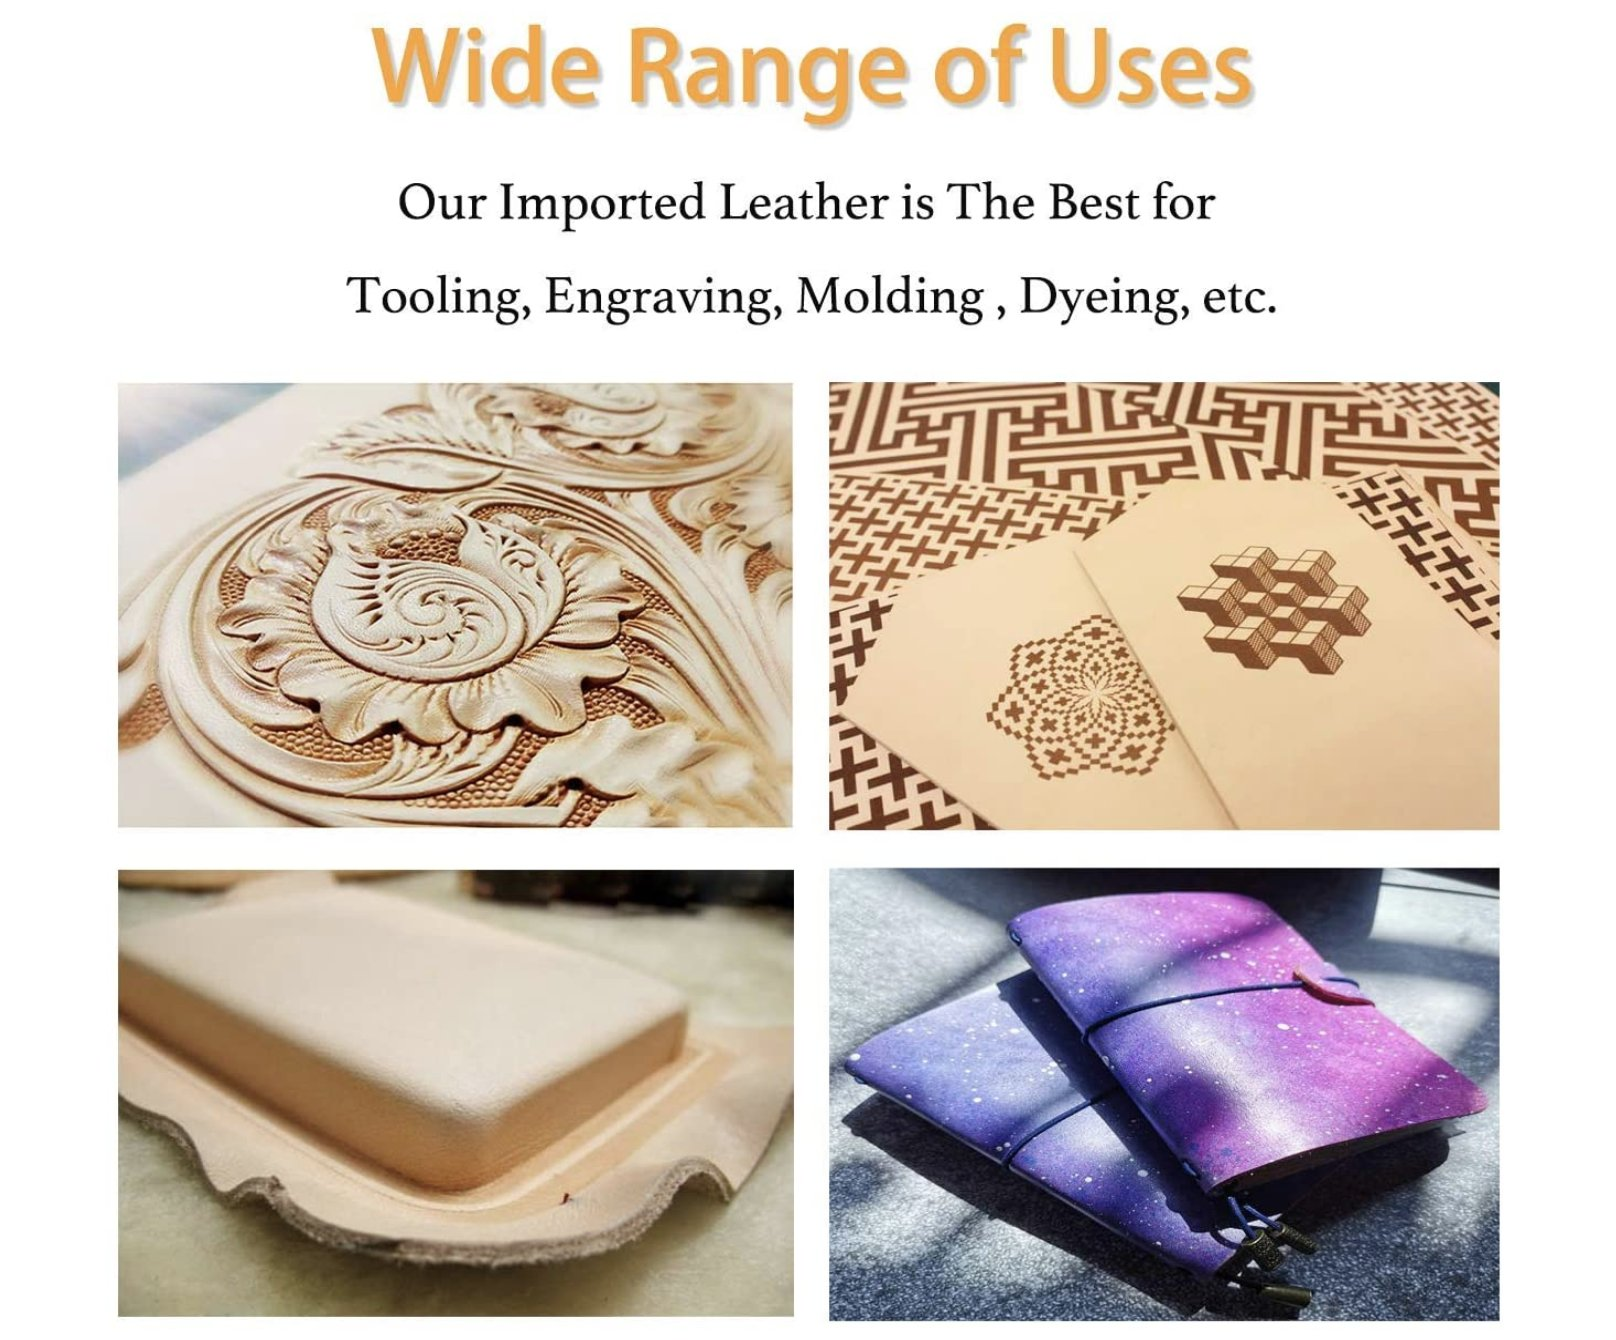 Tooling 2.5-4 Sqft 2.0-2.4mm Full Grain Vegetable Tanned Leather Molding Dyeing Hand and Leather Craft Carving Veg Tan Leather 5//6 oz A Grade Tooling Leather Hide